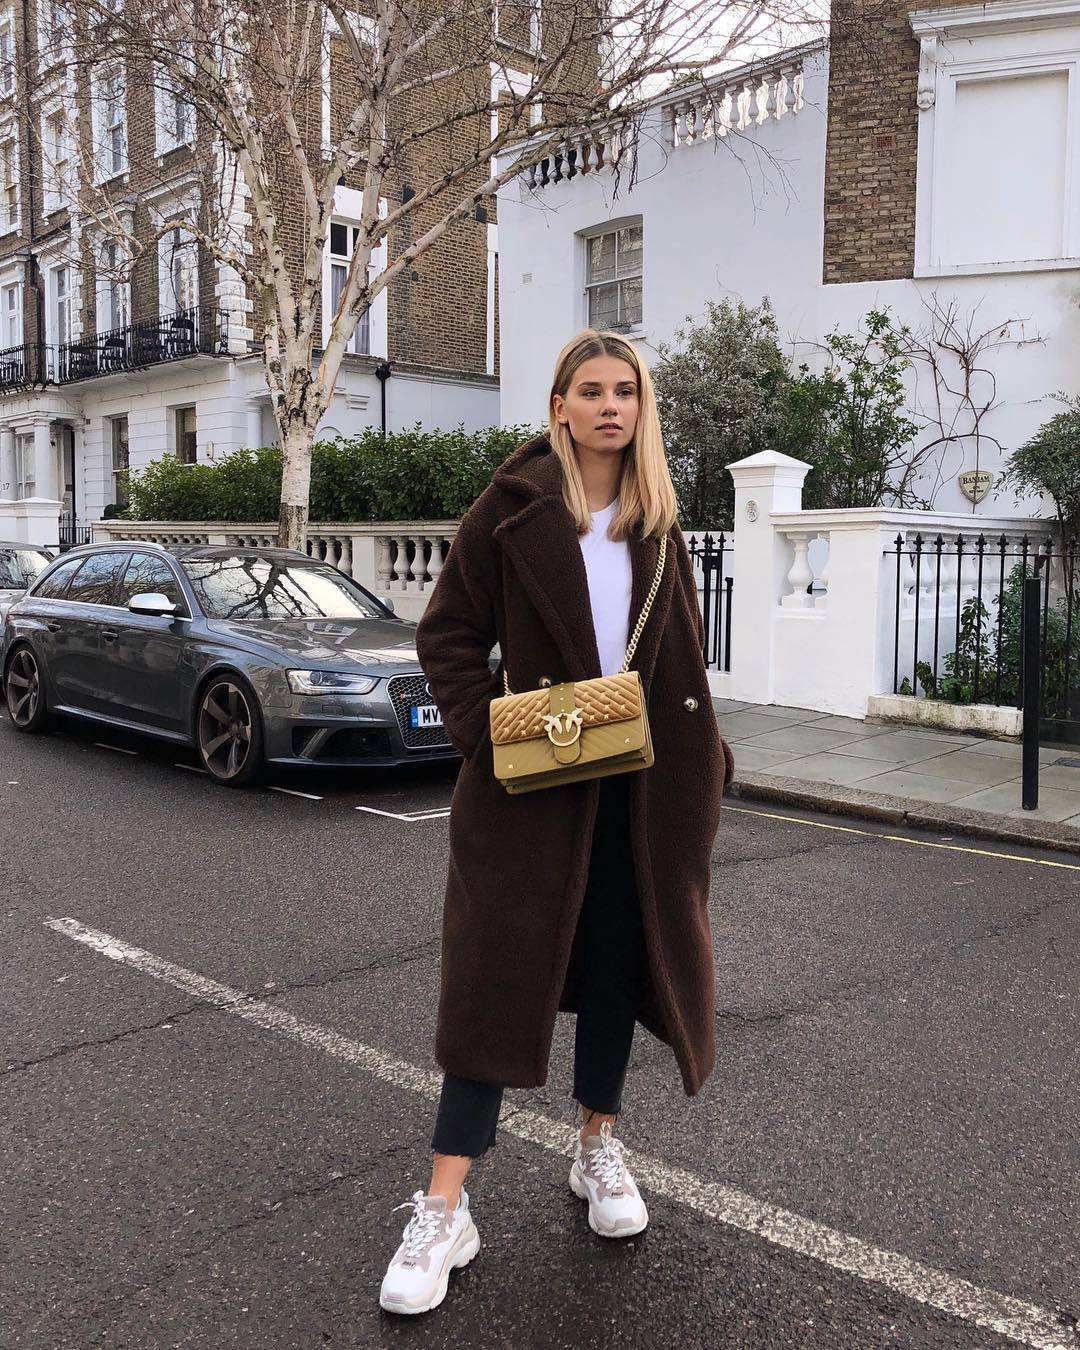 bag crossbody bag white sneakers cropped jeans straight jeans black jeans brown coat double breasted teddy bear coat white top